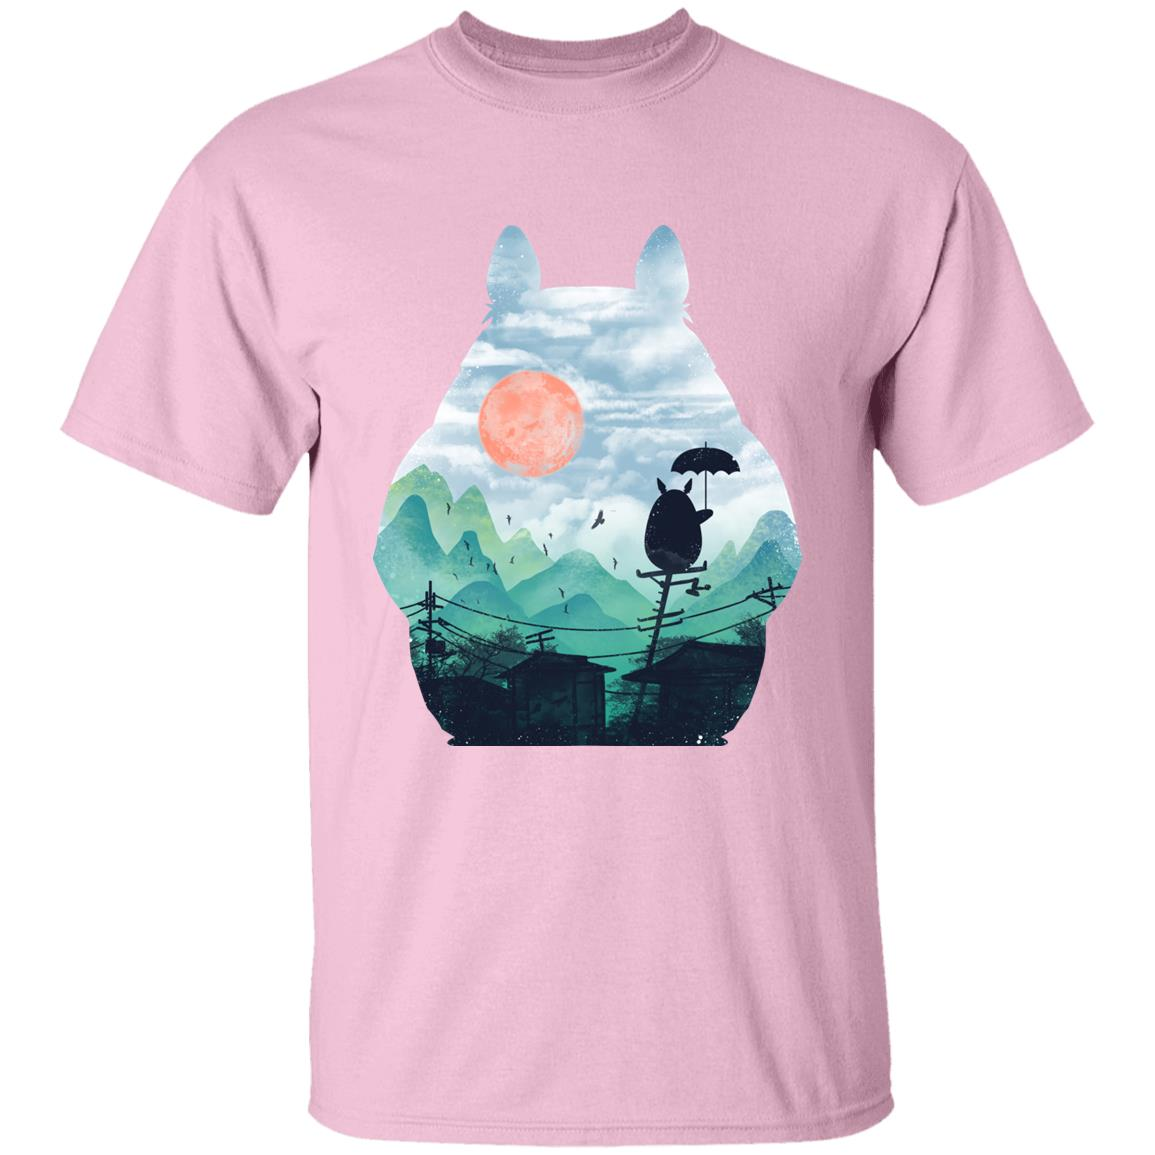 Totoro on the Line Lanscape T Shirt